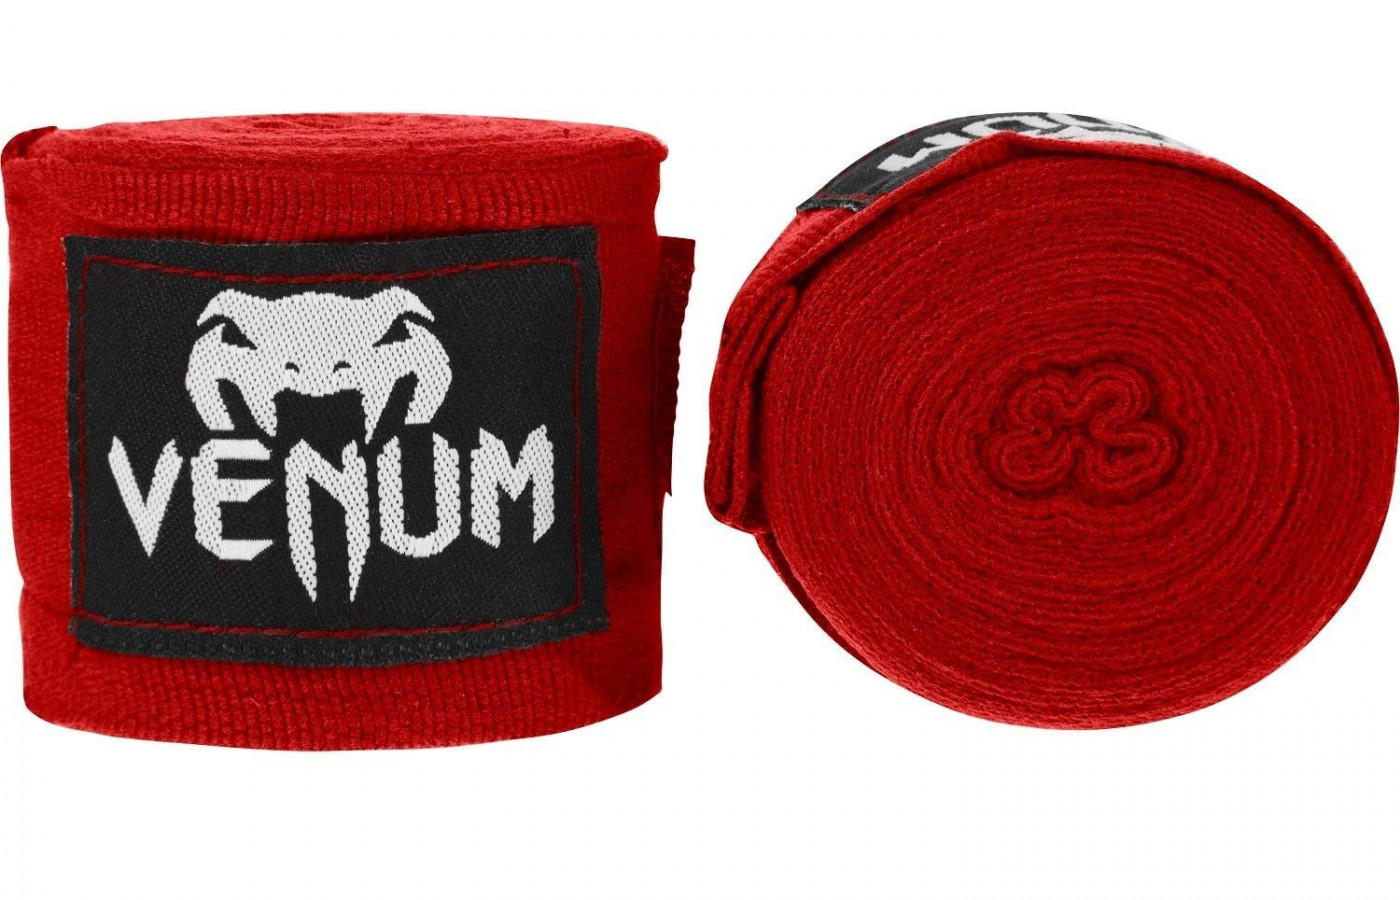 Venum wraps red